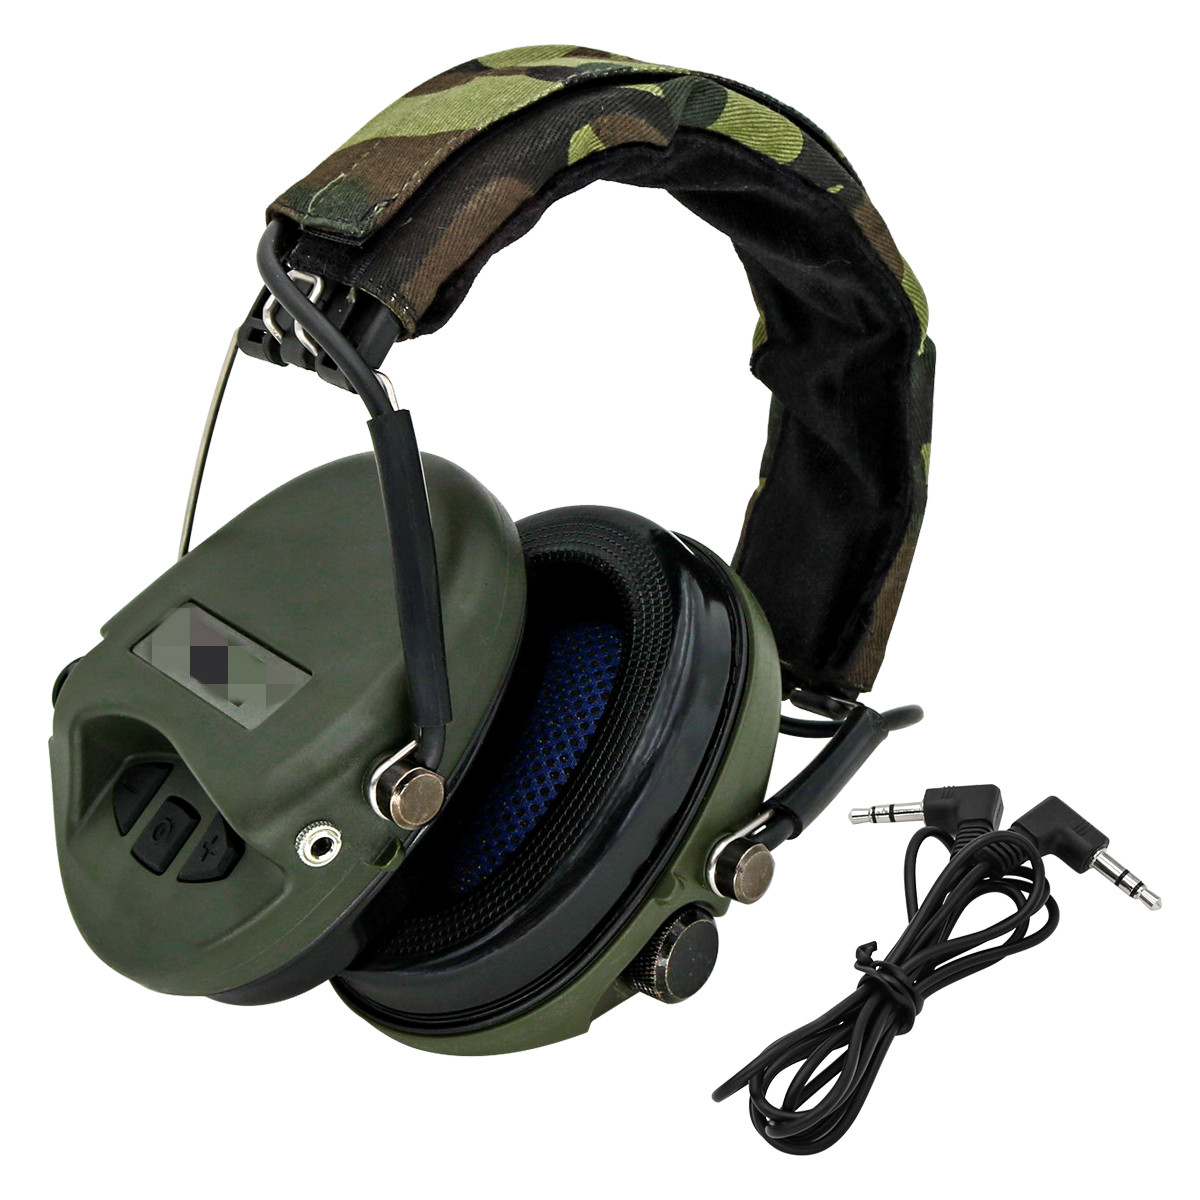 Tactical MSA Sordin Headphones Outdoor Hunting Military Shooting Softair Accessories Peltor Noise CancellingTactical Headphones